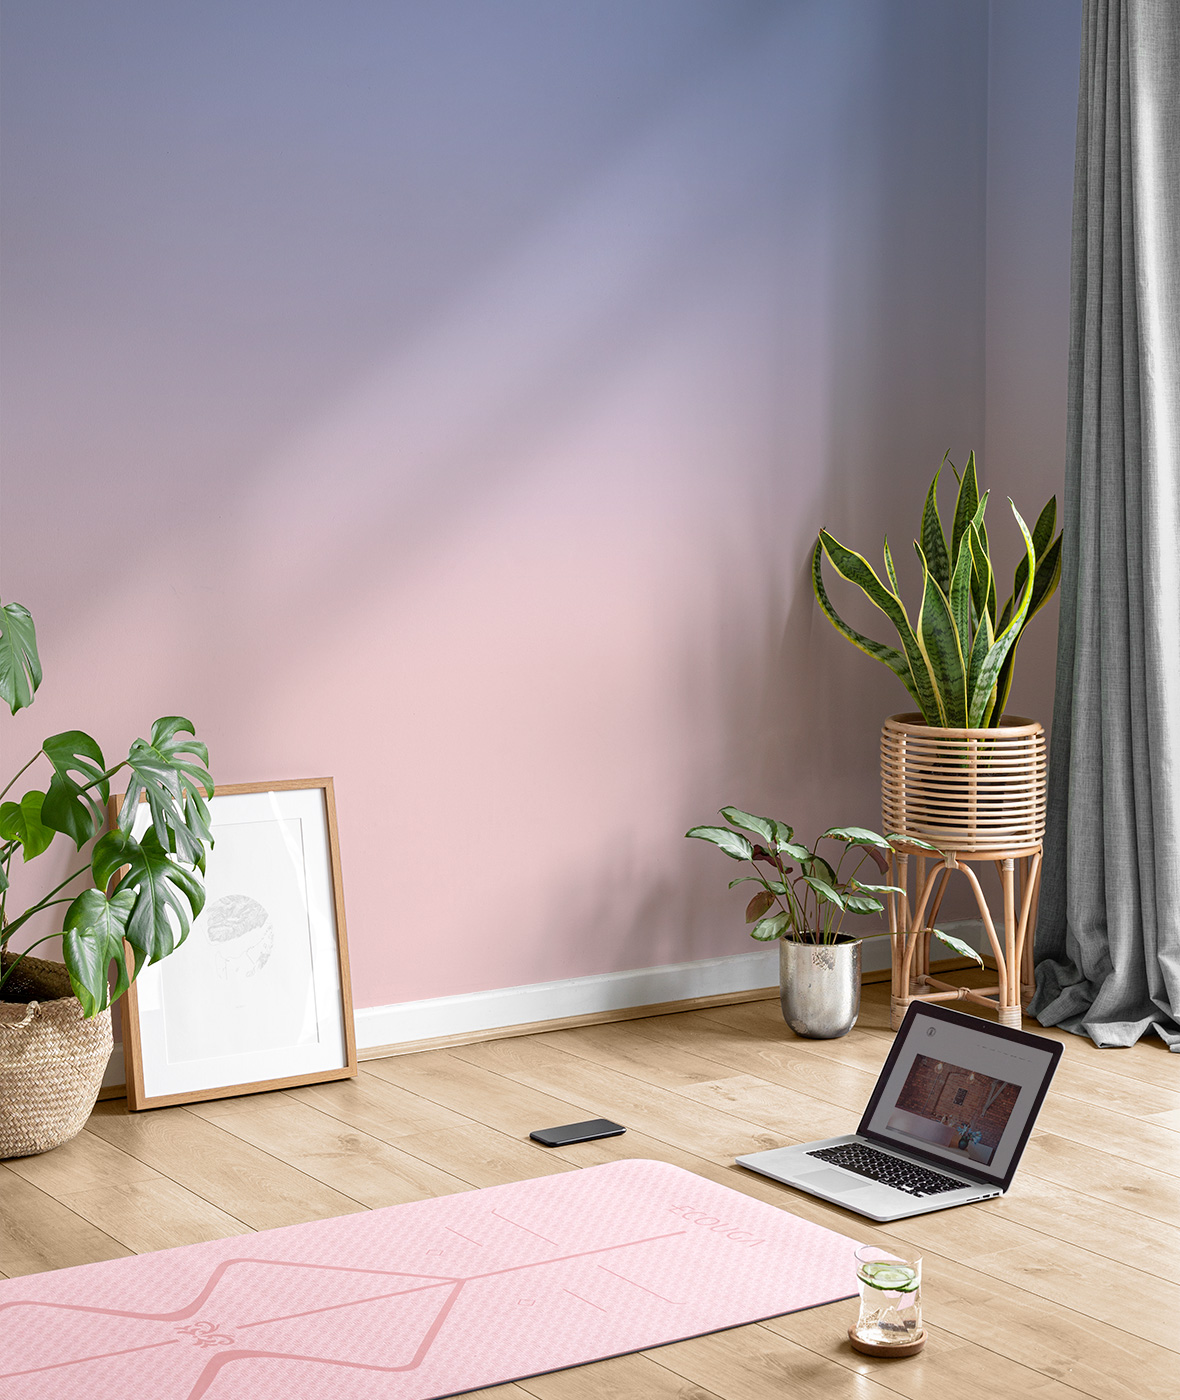 Walls are dulux pinkham and the stripes are in equatorial forest. 6 Inspiring Home Office Wallpaper Ideas To Suit Your Personality Hovia